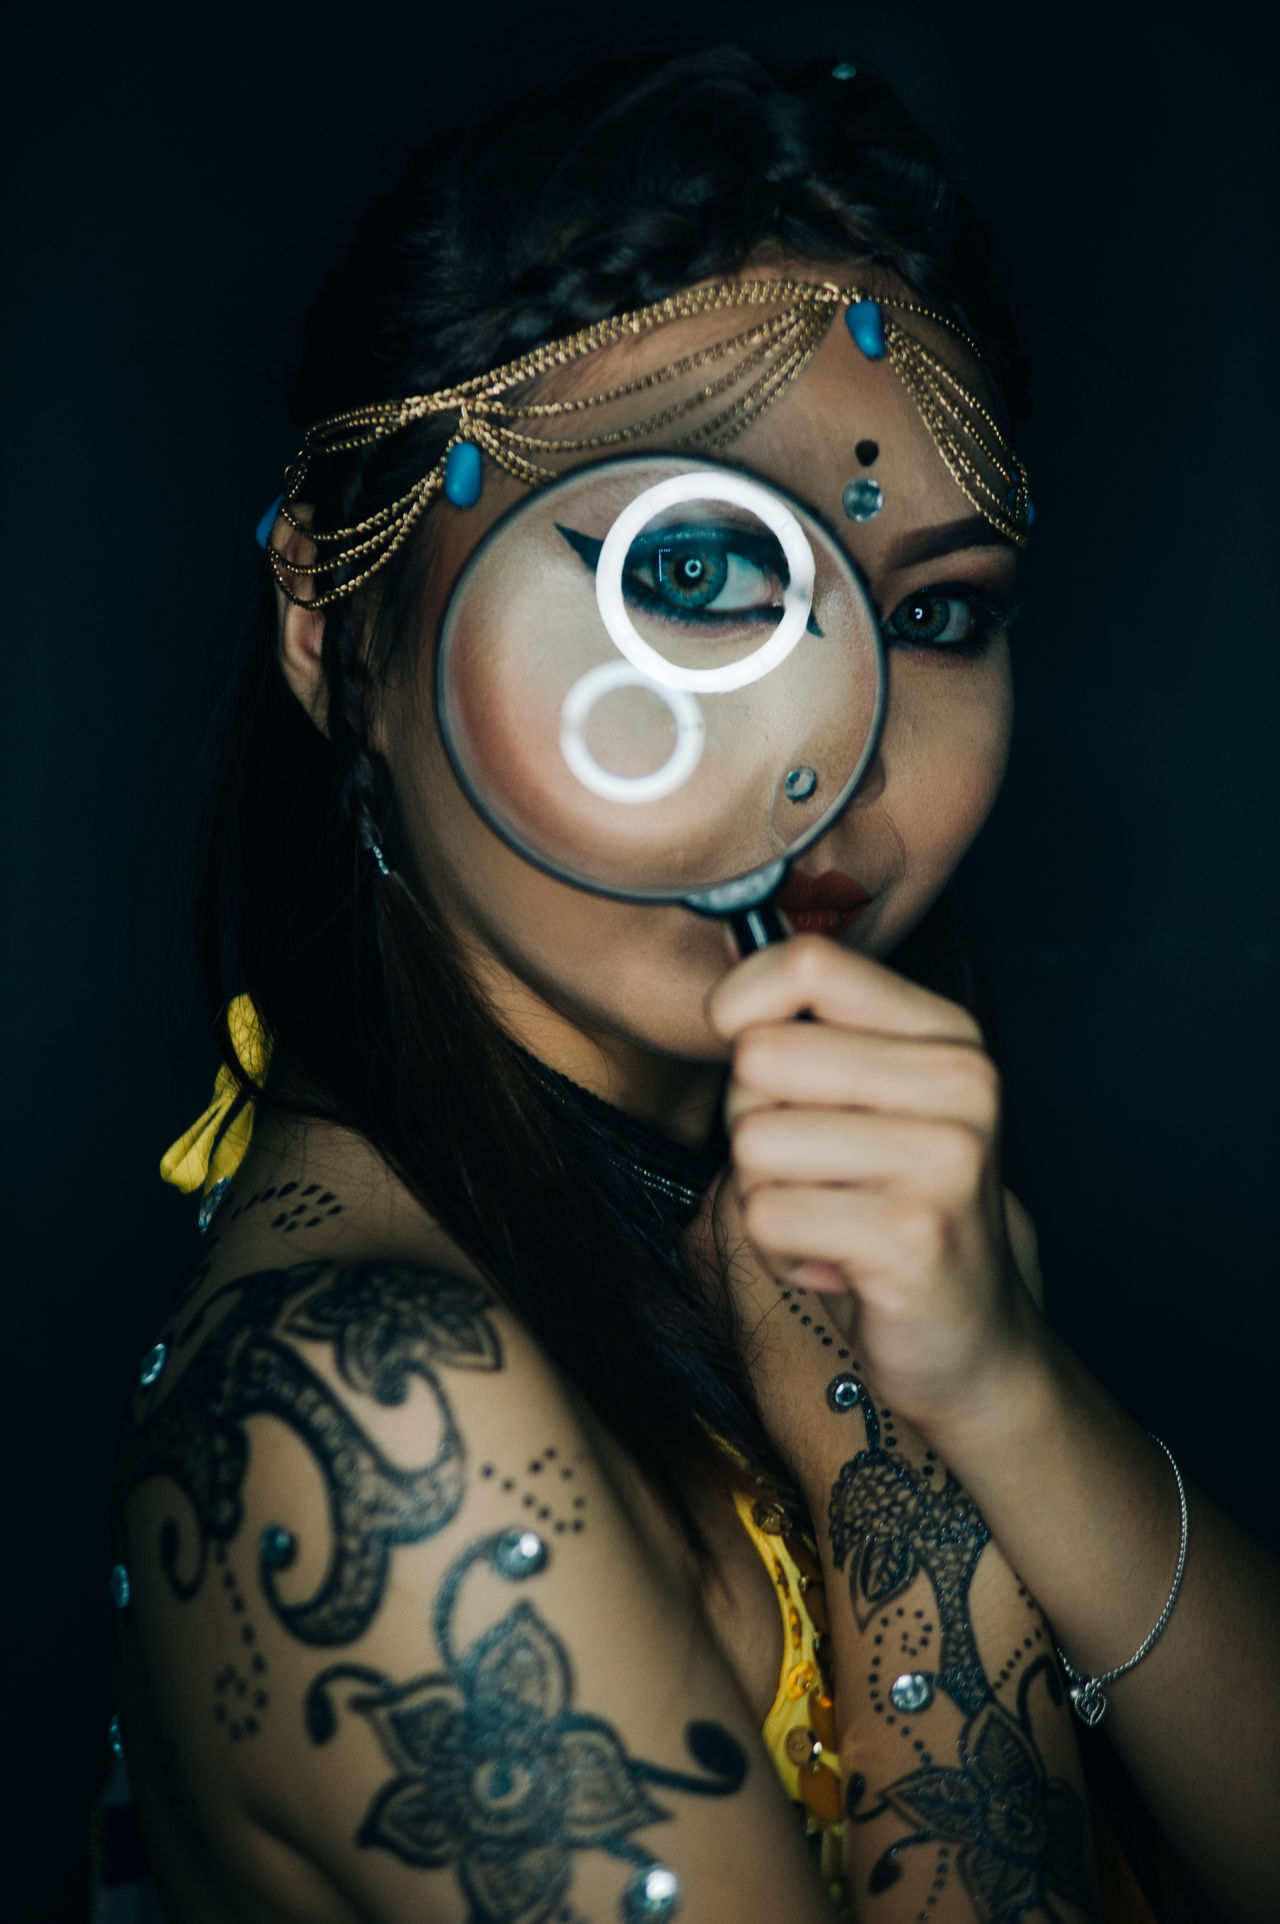 Close-up of tattooed woman looking through magnifying glass against black background